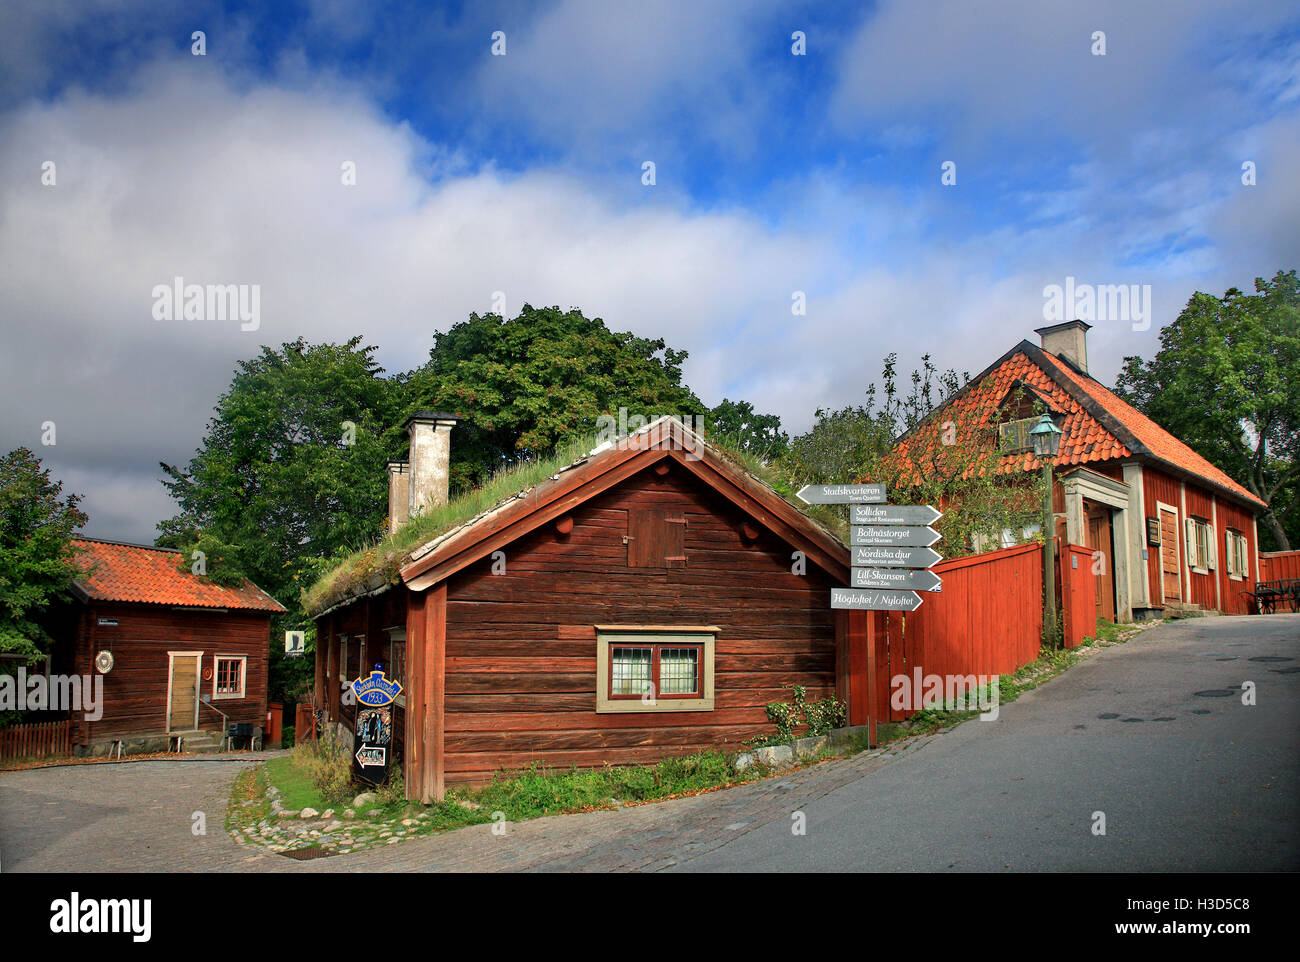 Traditional 'old' Swedish architecture in Skansen open air museum, Djurgarden island, Stockholm, Sweden - Stock Image